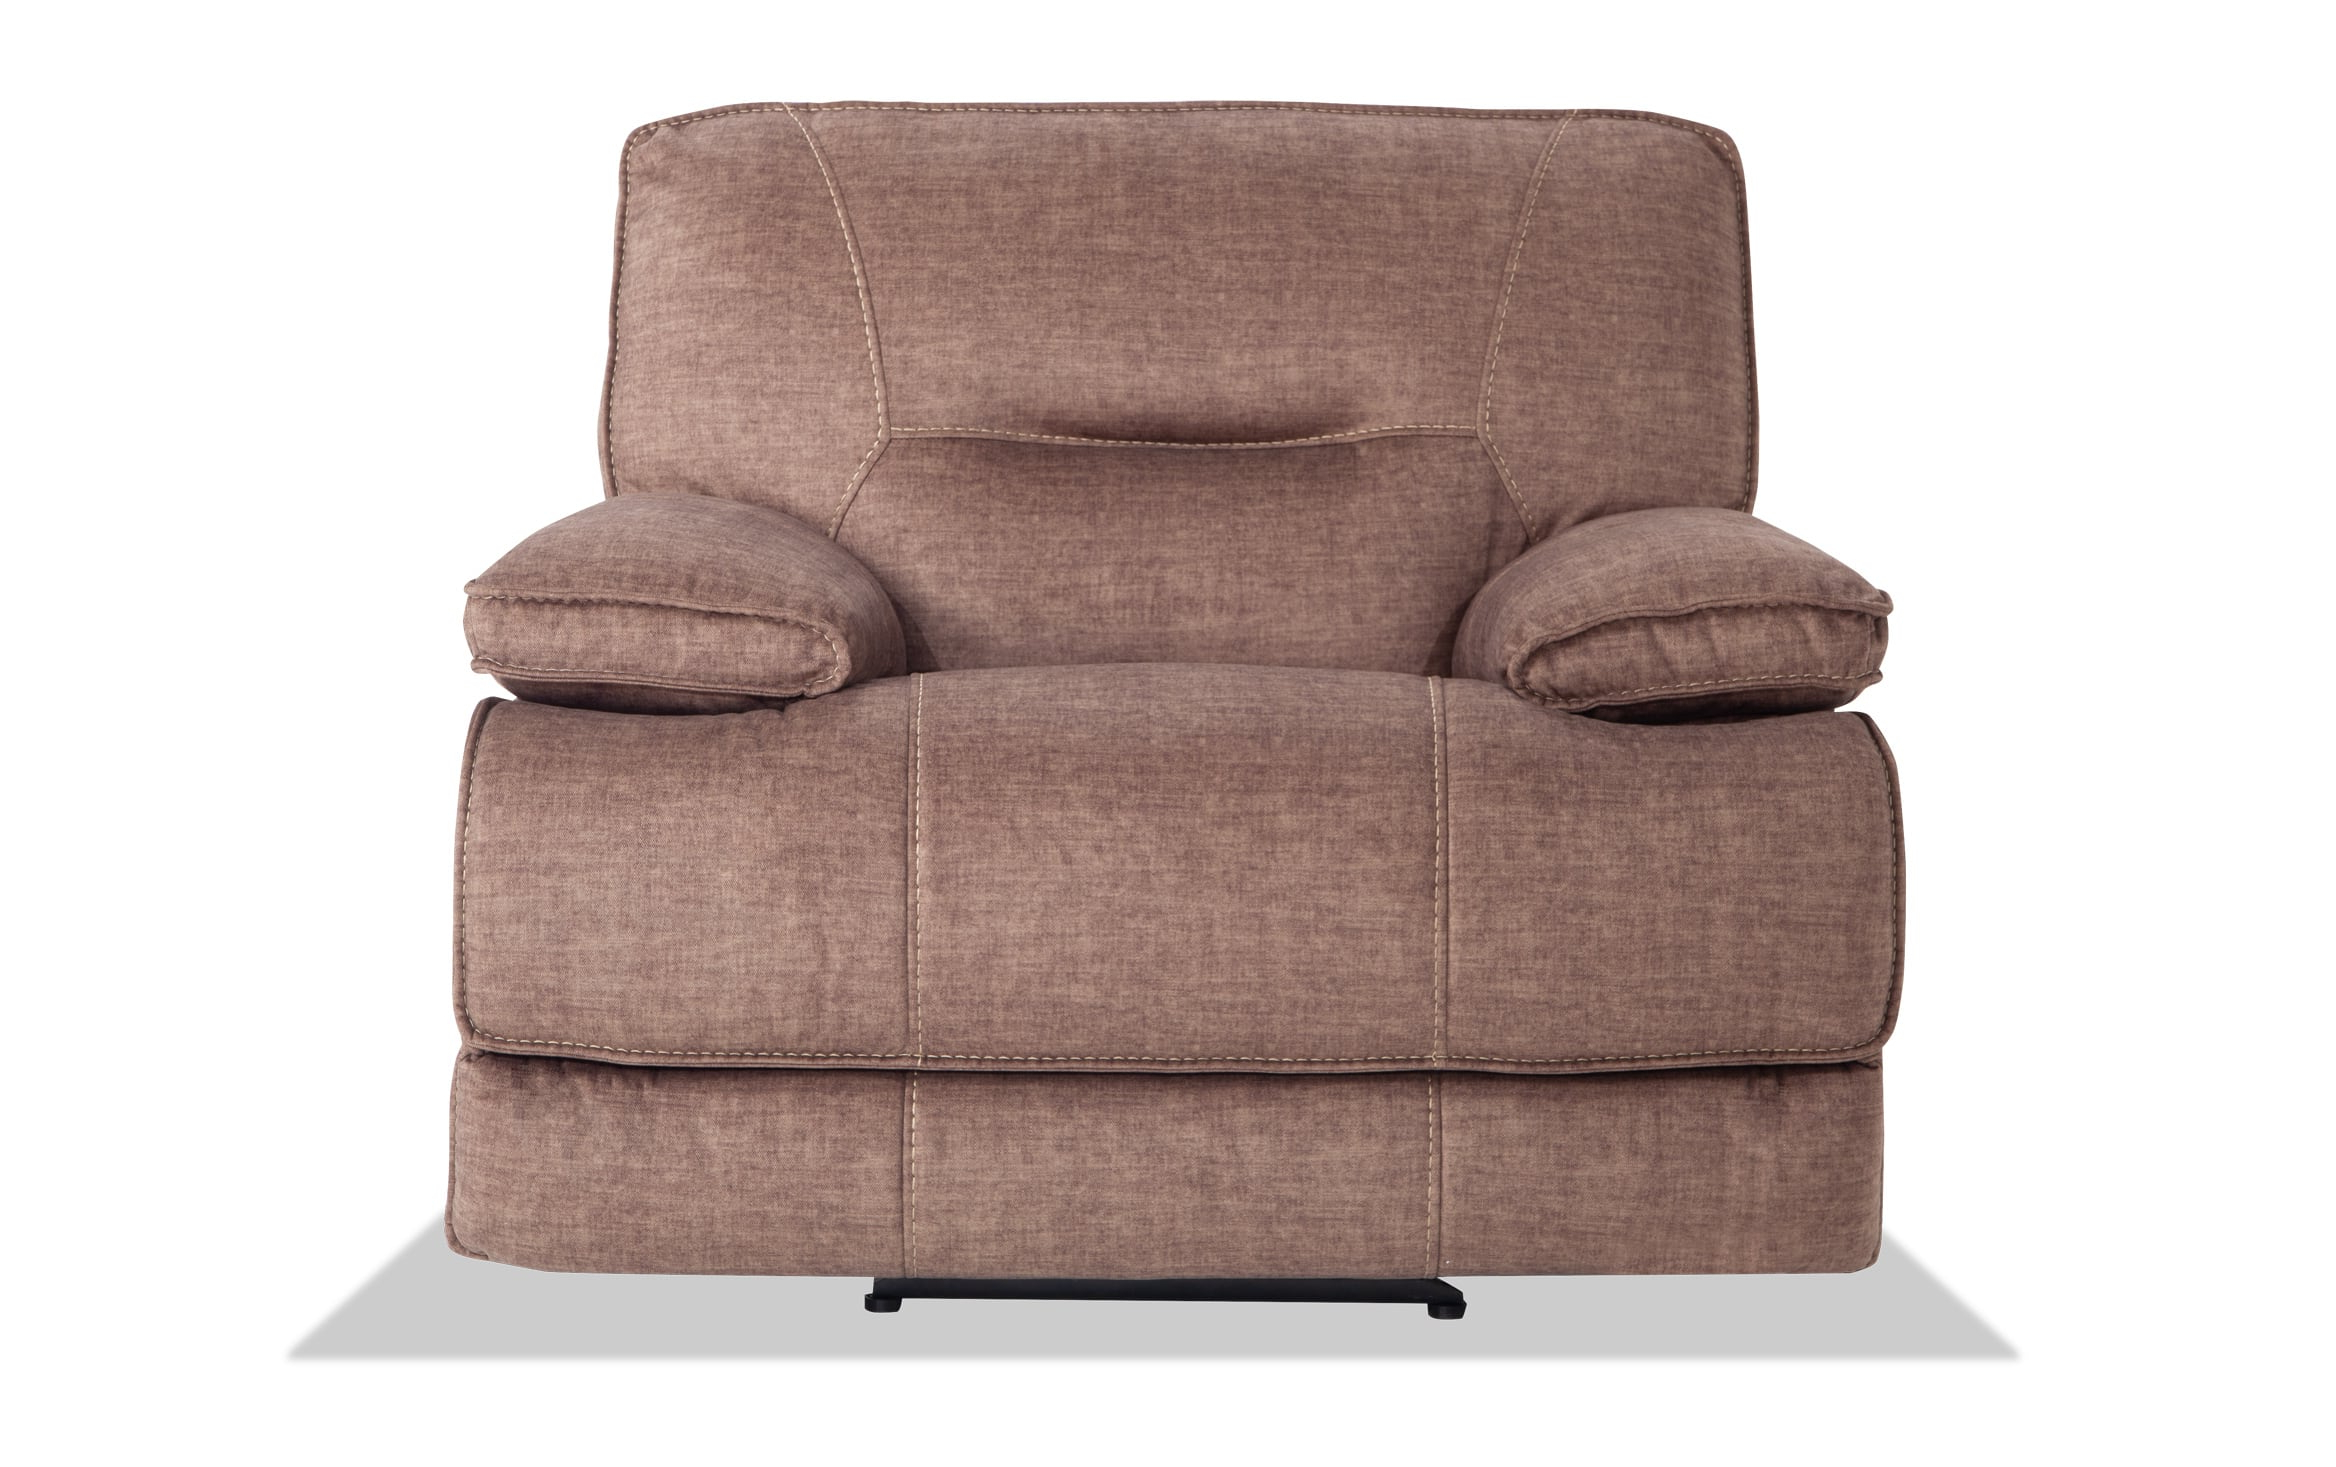 Famous Bobs Furniture Pacifica – Home Ideas And More In Pacifica Gray Power Reclining Sofas (View 14 of 15)